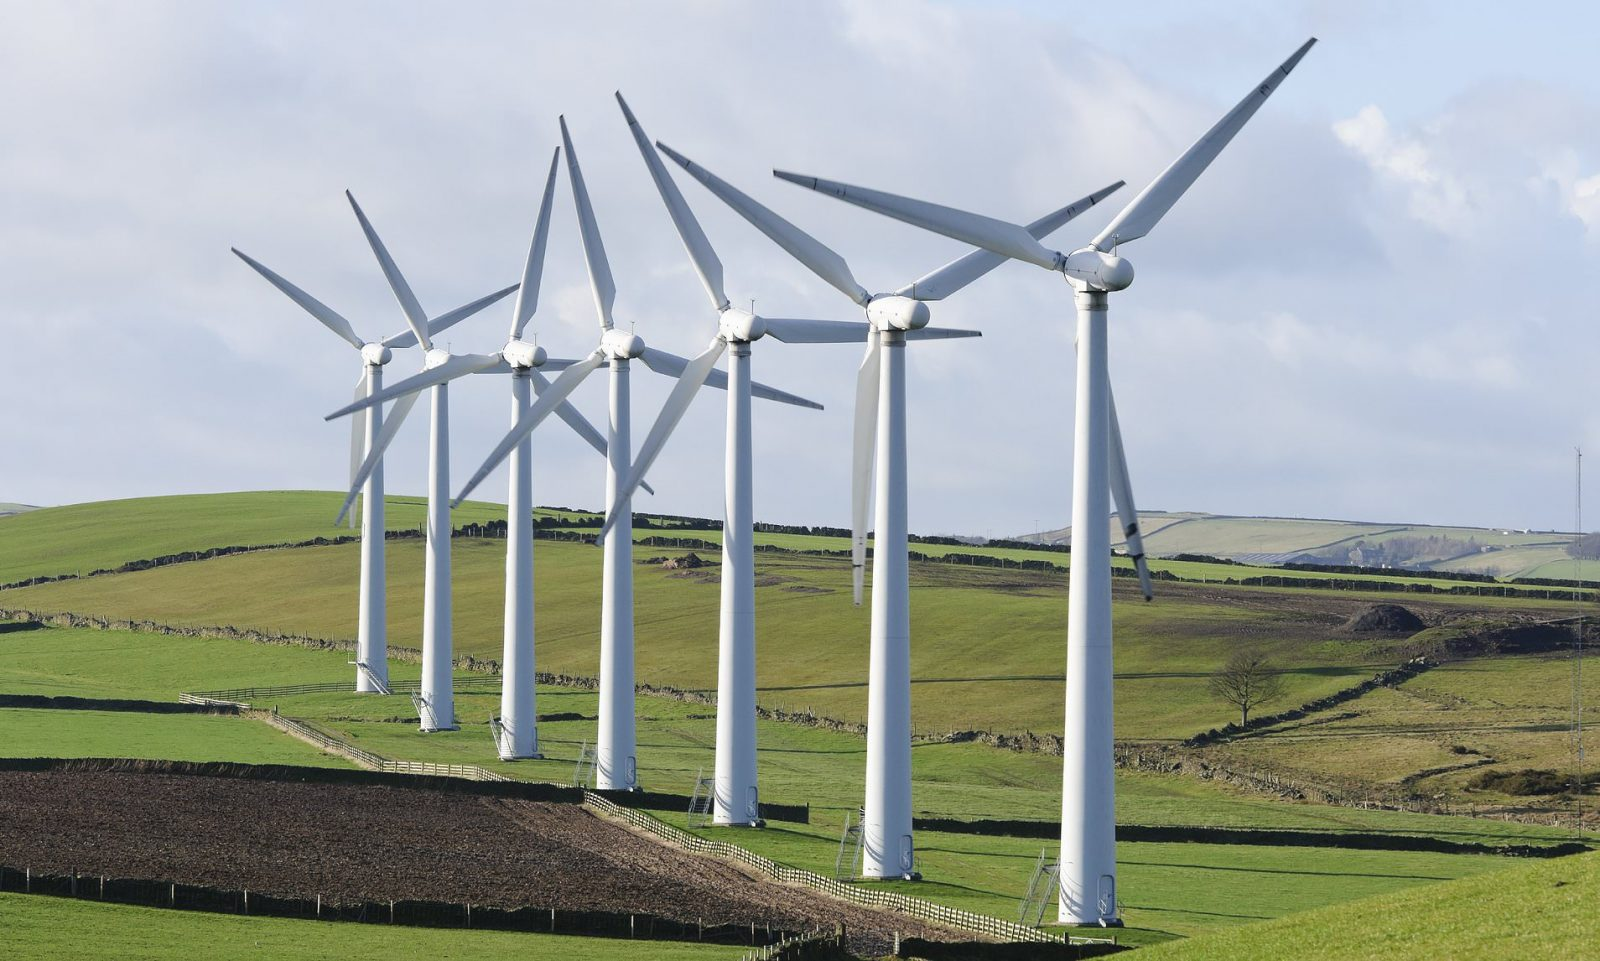 UK Generates More Electricity From Renewable Sources Than Fossil Fuels For The First Time